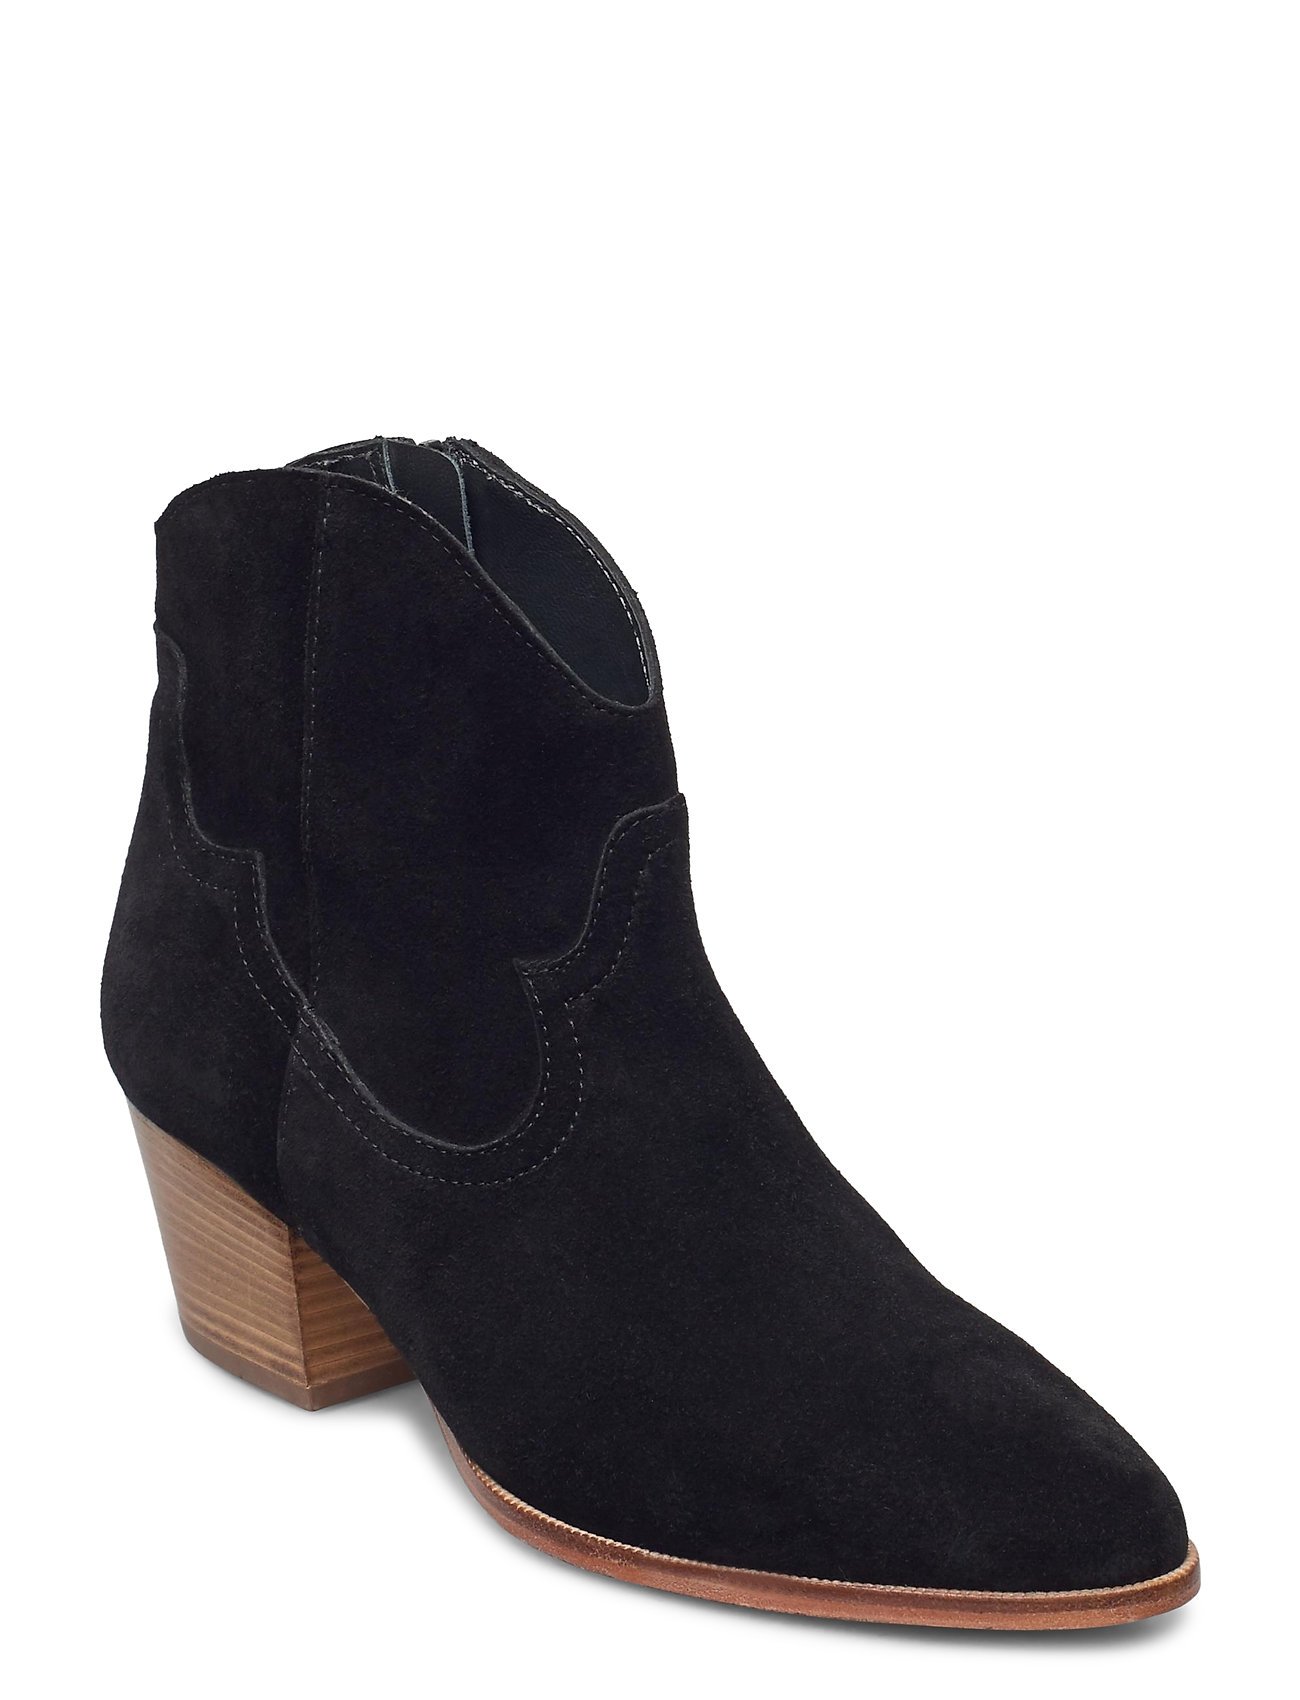 Image of Booties - Block Heel - With Elas Shoes Boots Ankle Boots Ankle Boot - Heel Sort ANGULUS (3475744003)